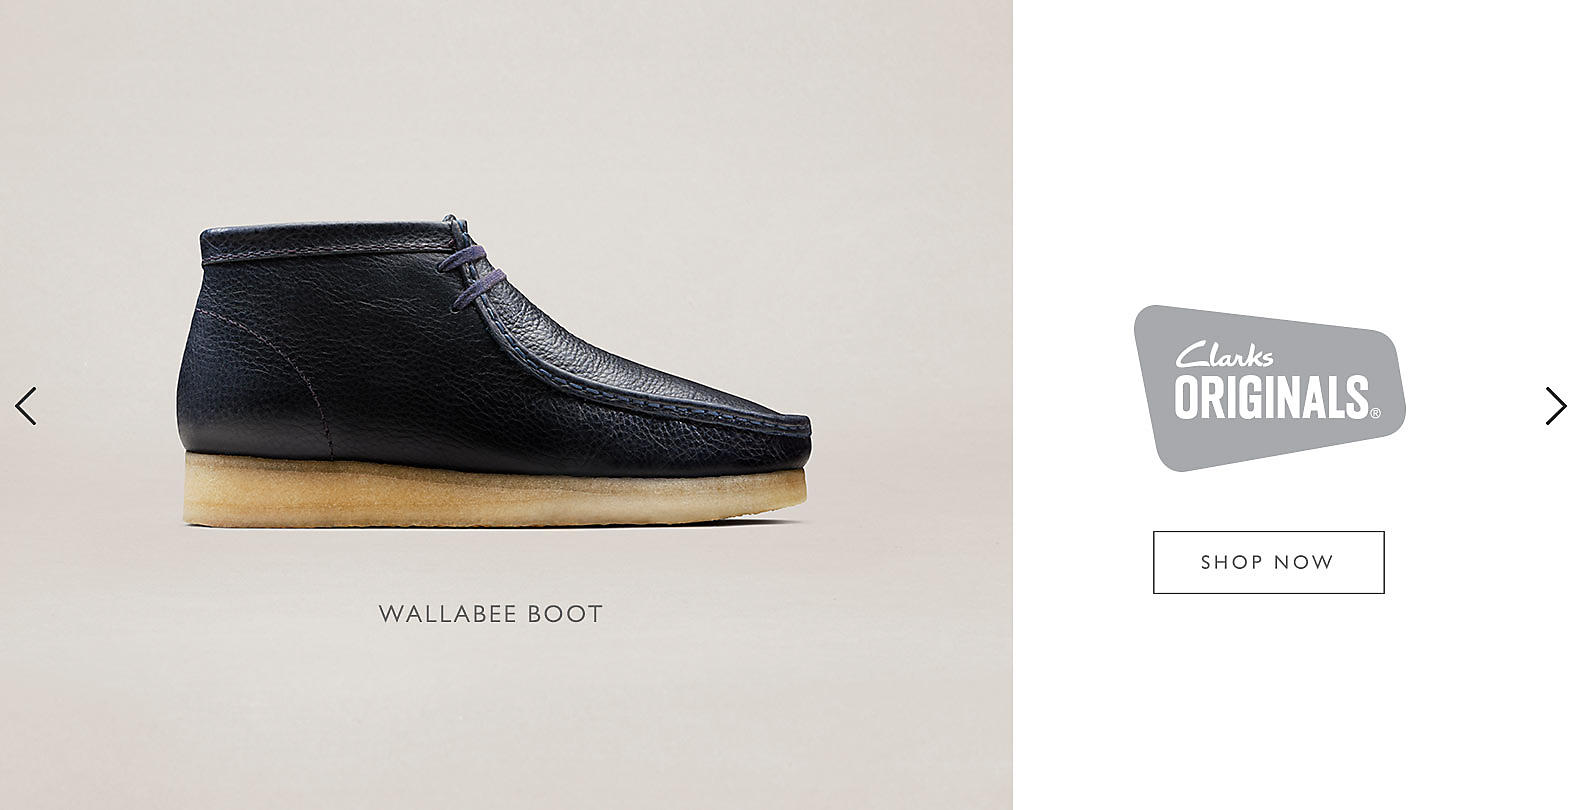 Shop Clarks Wallabee Boots